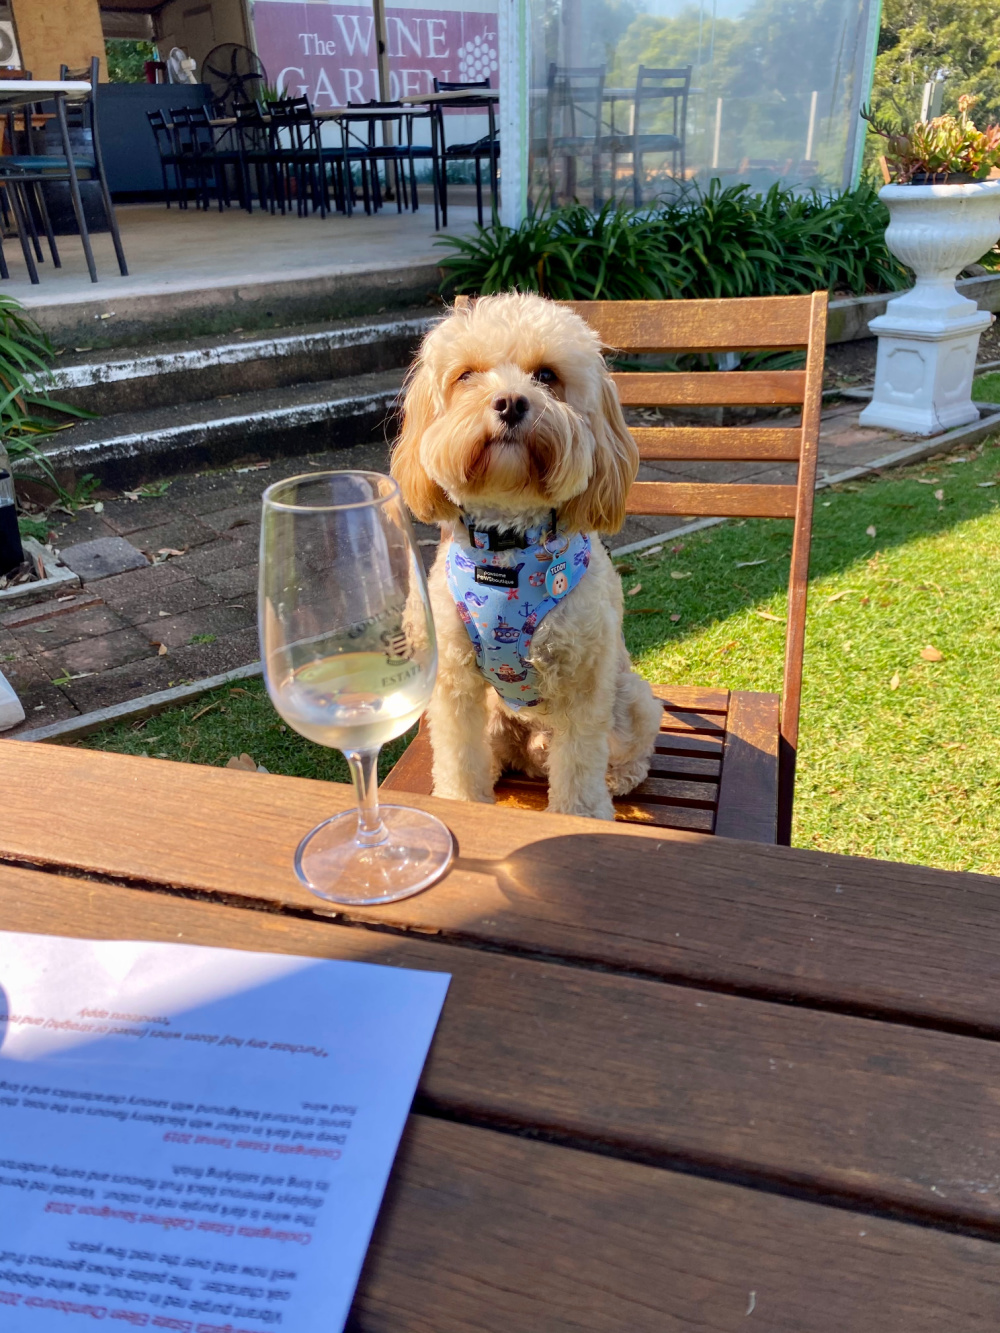 dog sitting on chair looking at a glass of wine